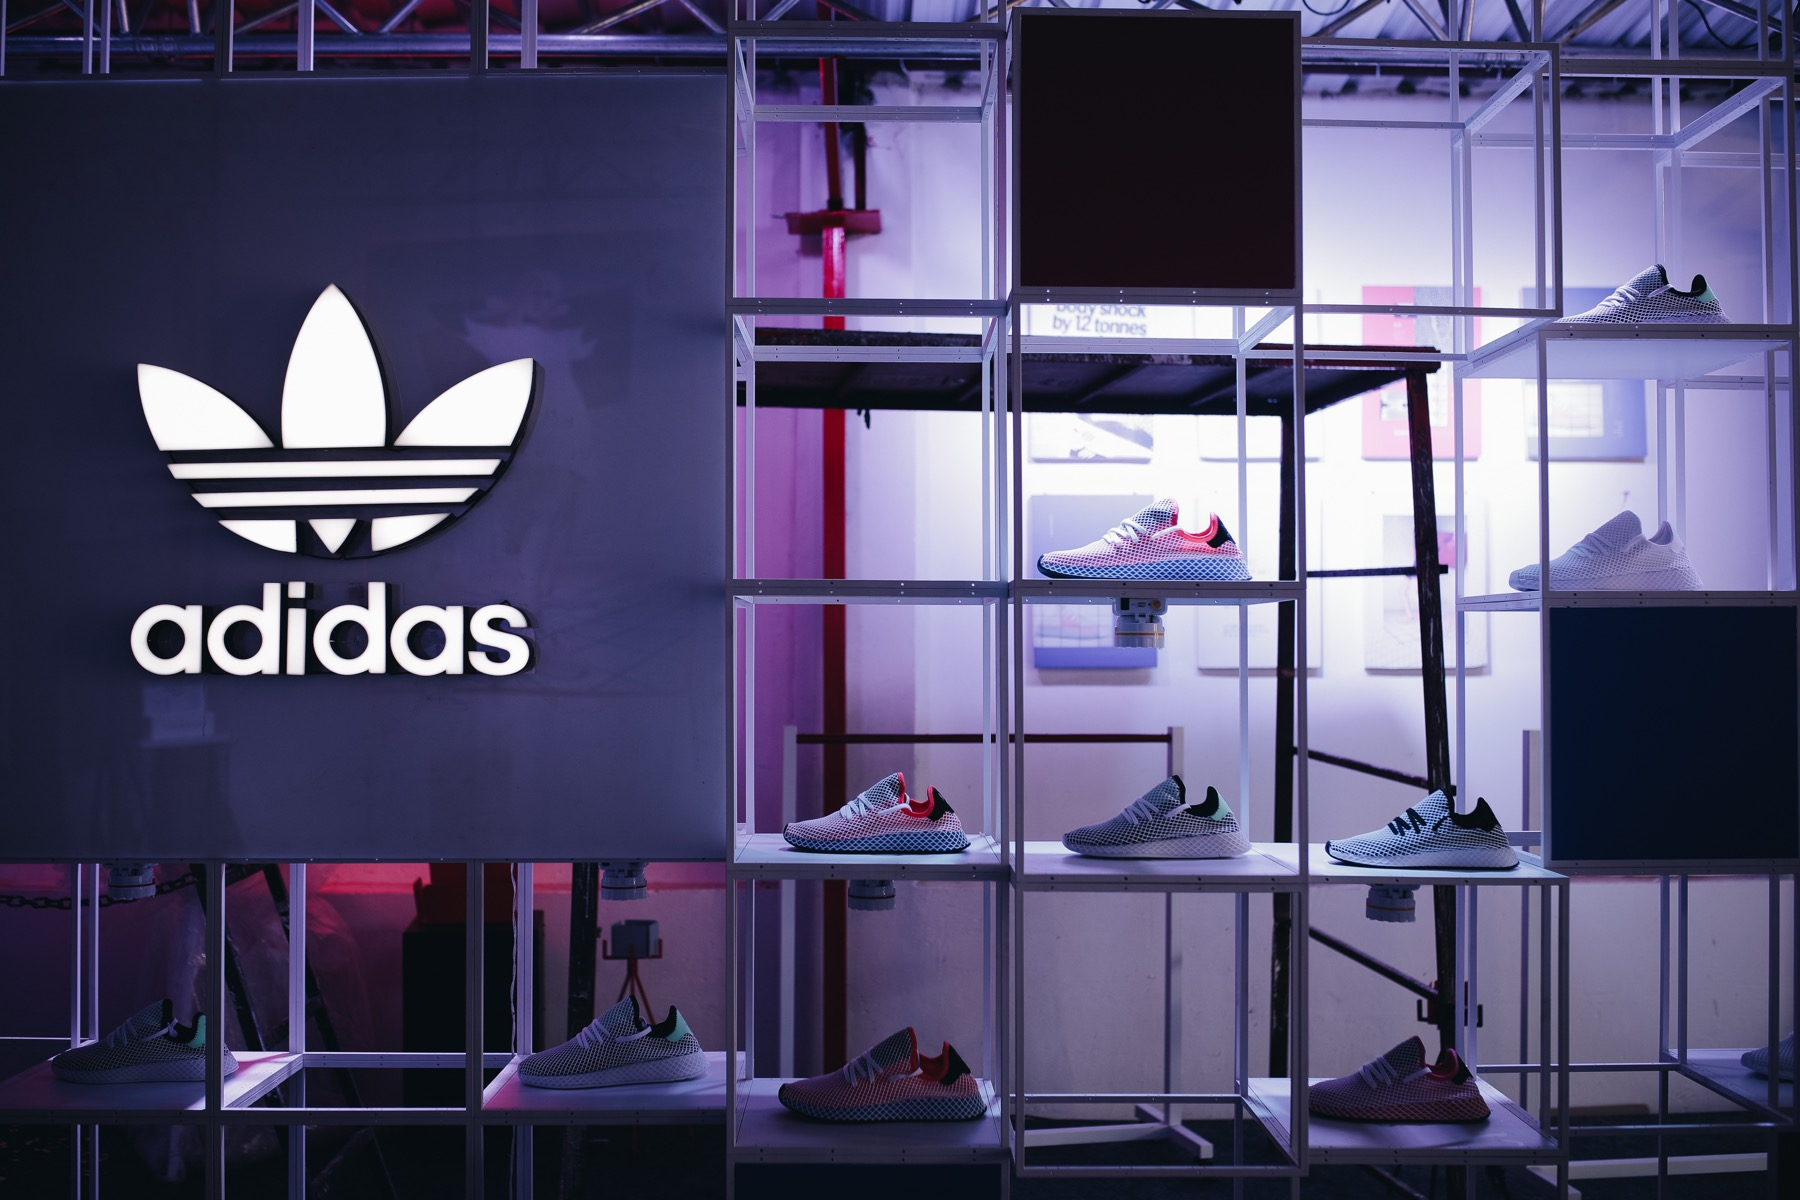 Homegrown India presents HGStreet in Mumbai on March 18, 2018, a celebration of sneaker and street culture - launch of adidas Deerupt by adidas Originals at the Deerupt Experience976A5391.jpg